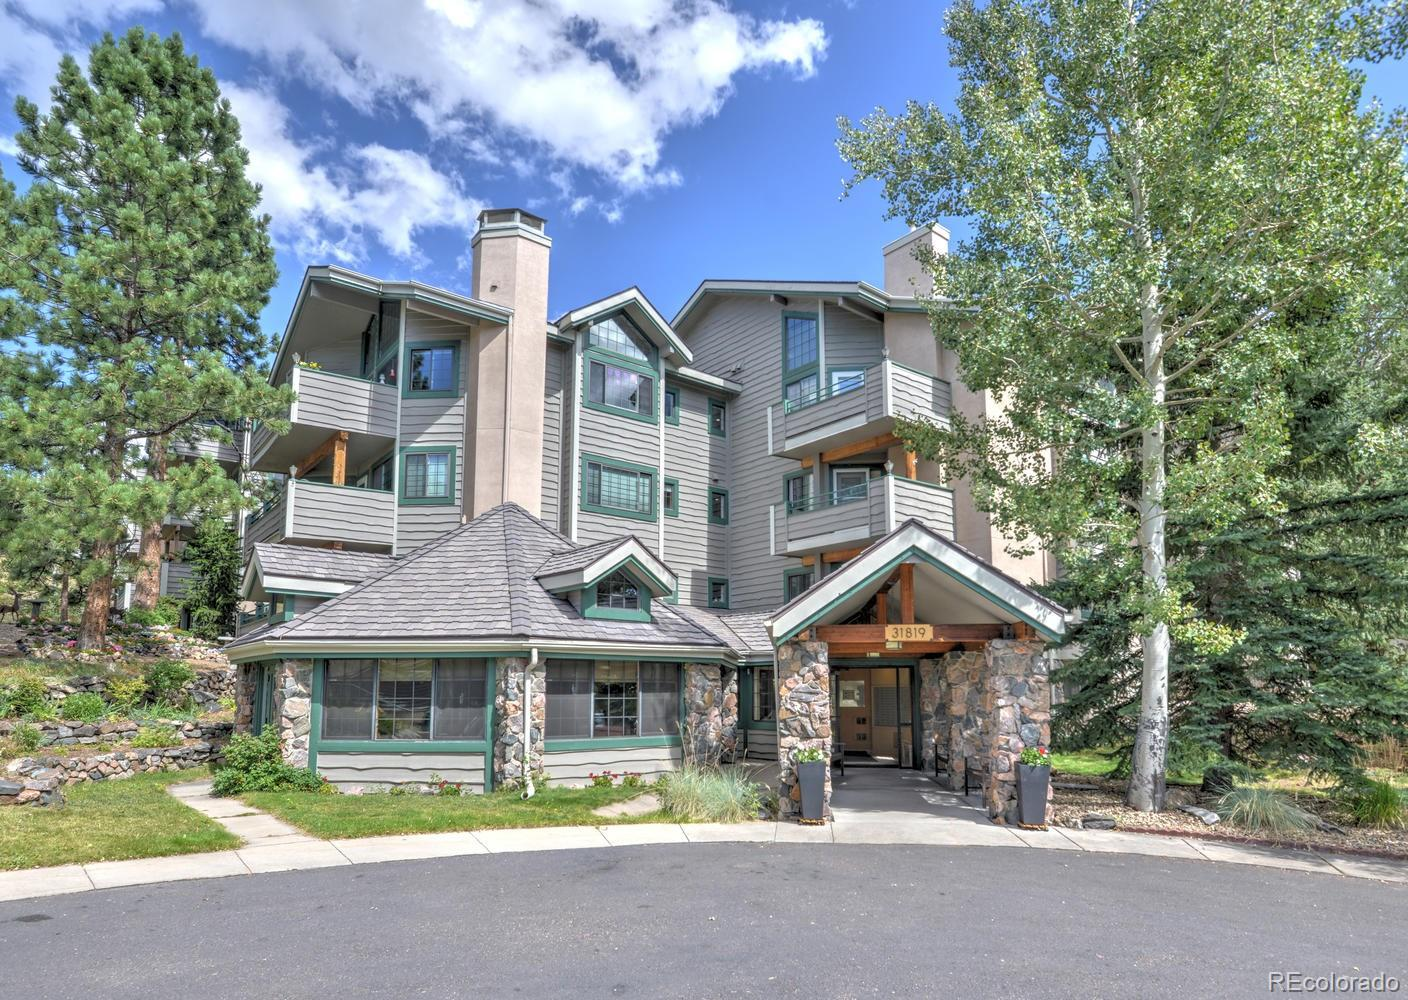 31819 Rocky Village Drive #317, Evergreen, CO 80439 - Evergreen, CO real estate listing